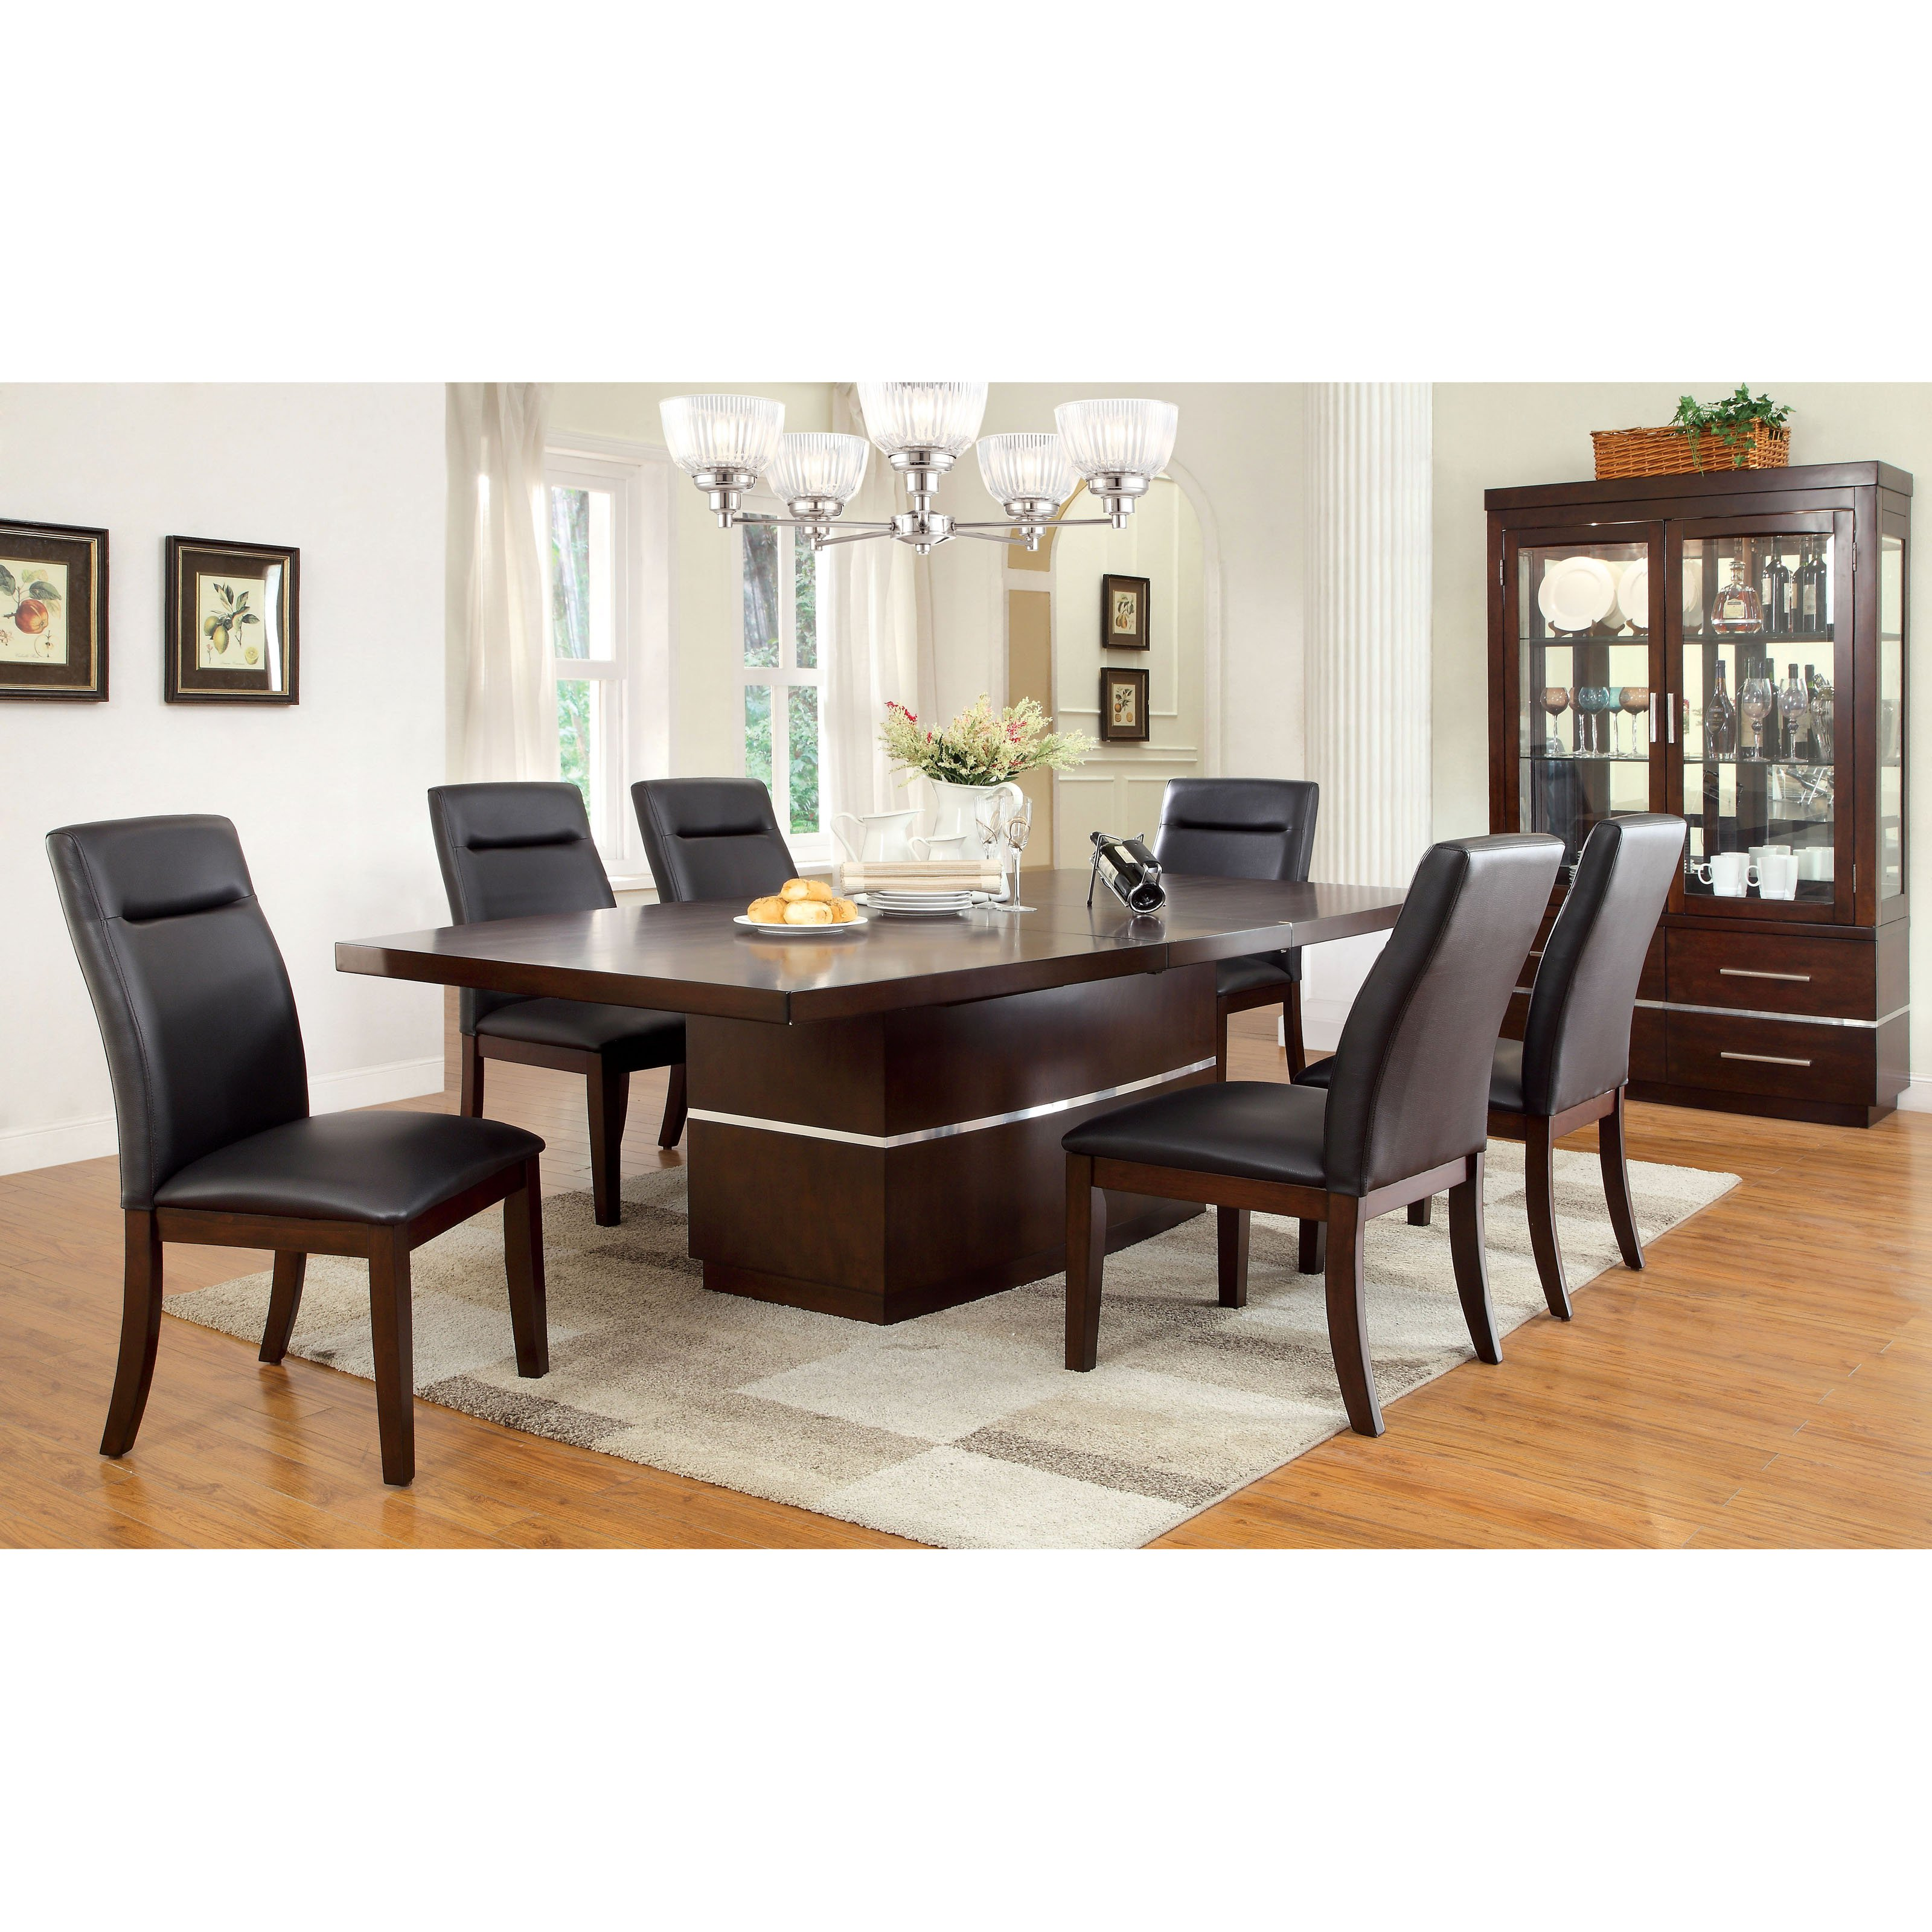 Furniture of America Langfield 7 Piece Modern Dining Room Set by Enitial Lab